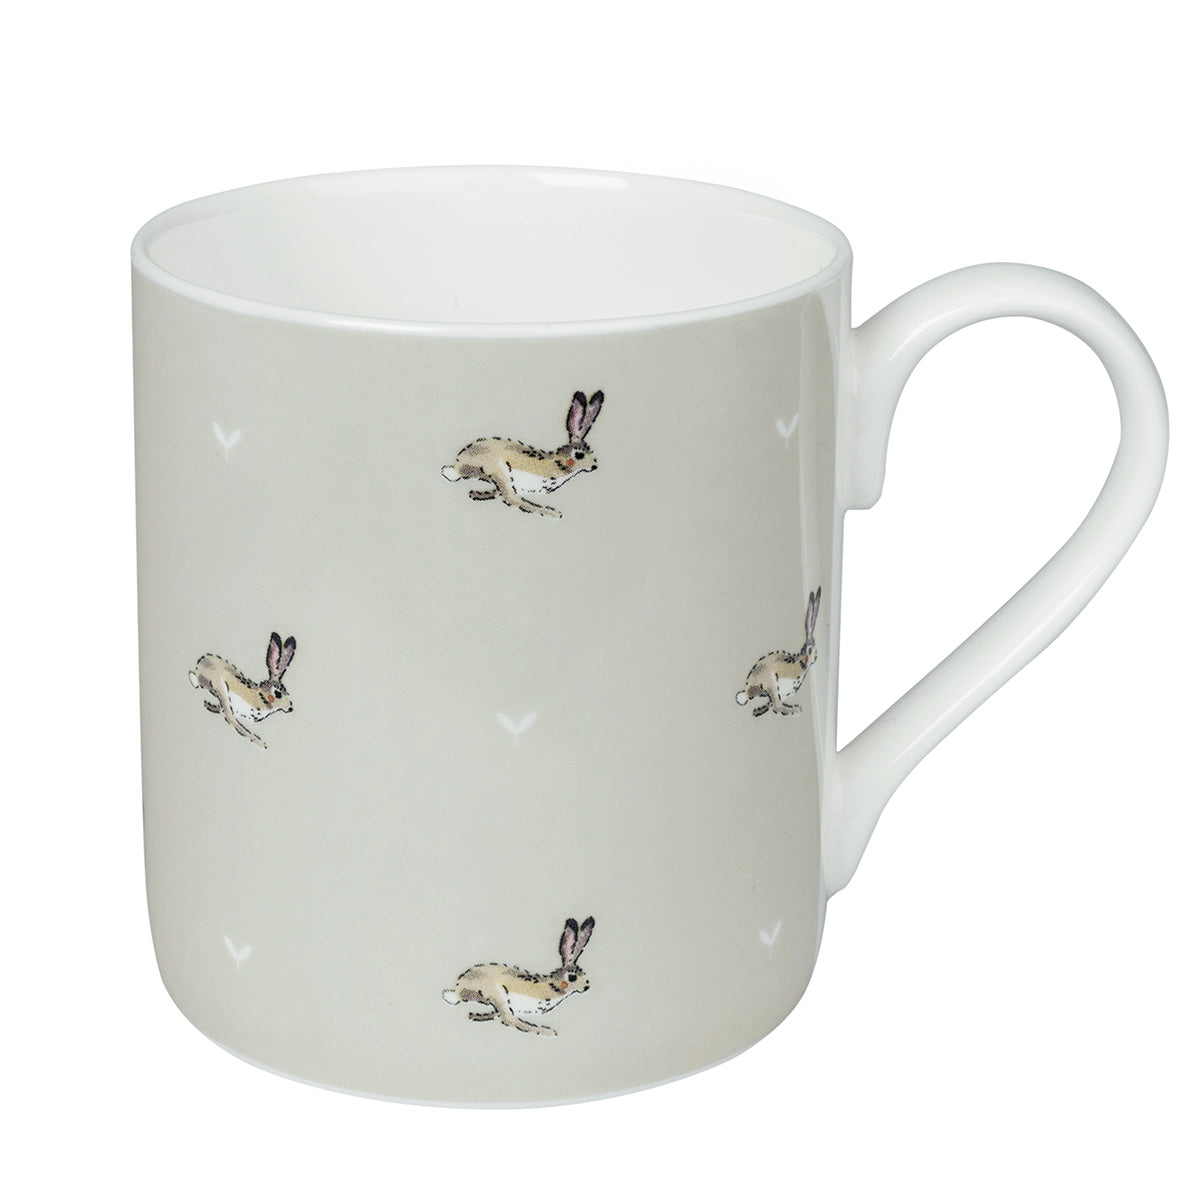 Bunny & Seed Stone Mug by Sophie Allport